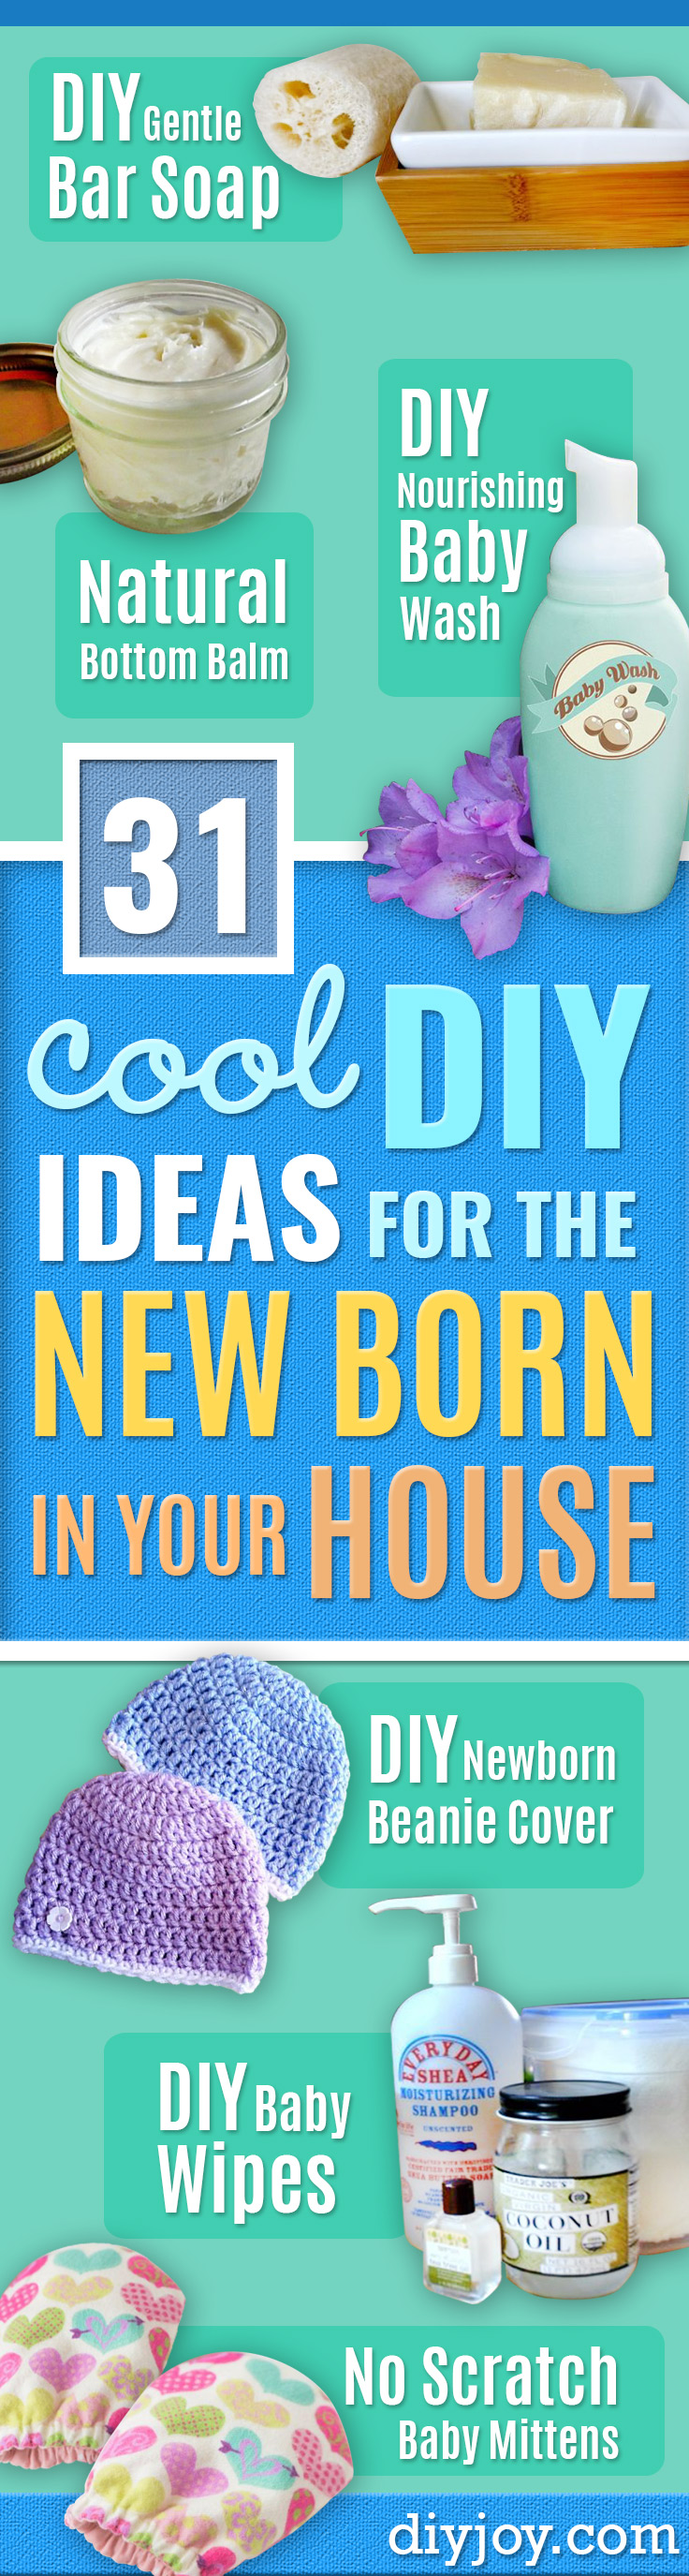 31 DIY Ideas for the Newborn in Your House